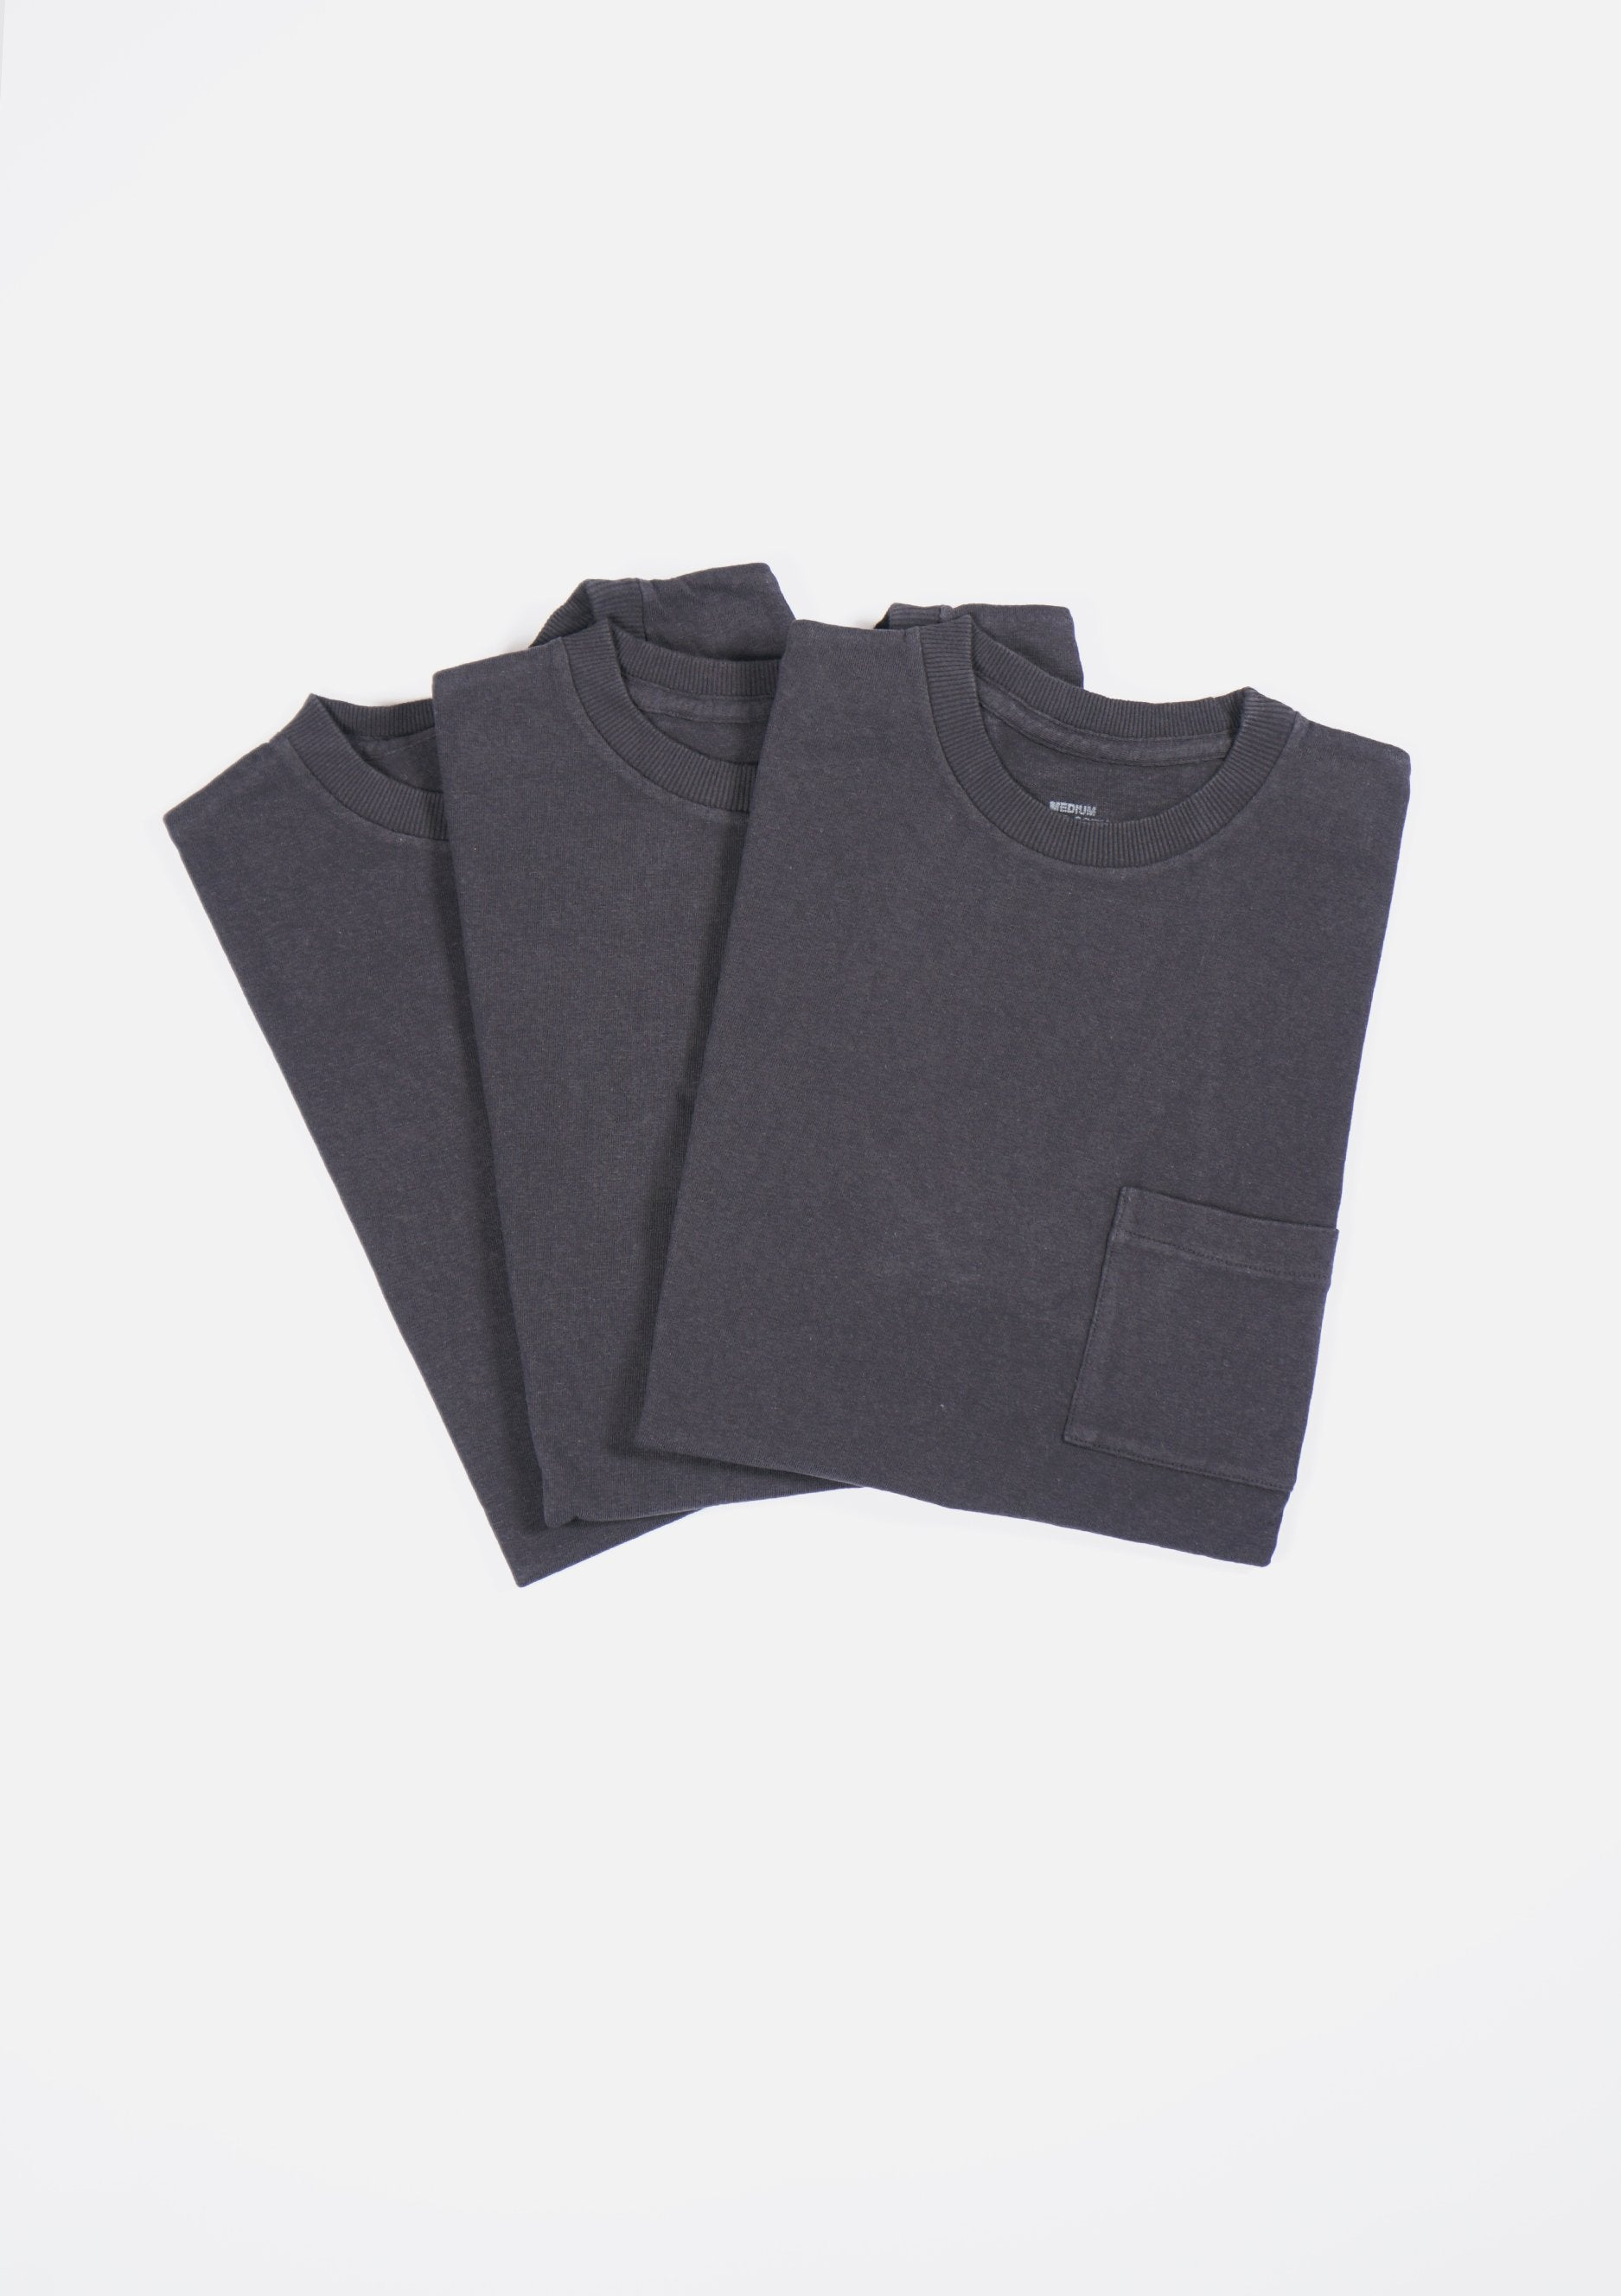 3-Pack Original Classic Pocket T-shirts Black